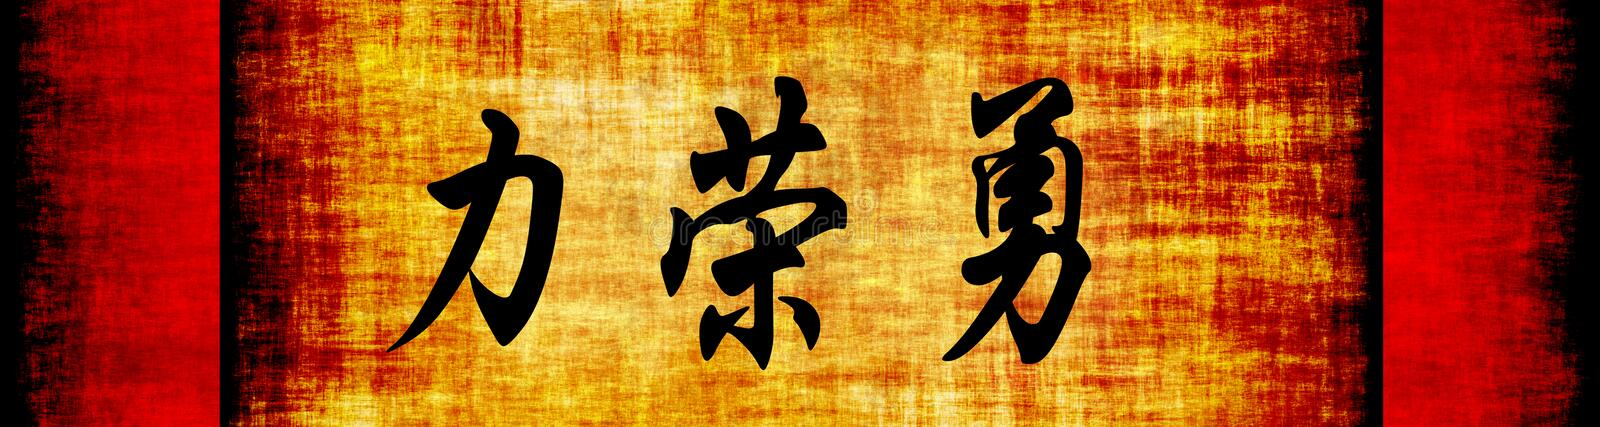 Download Strength Honor Courage Chinese Motivational Phrase Stock Illustration - Image: 7233172